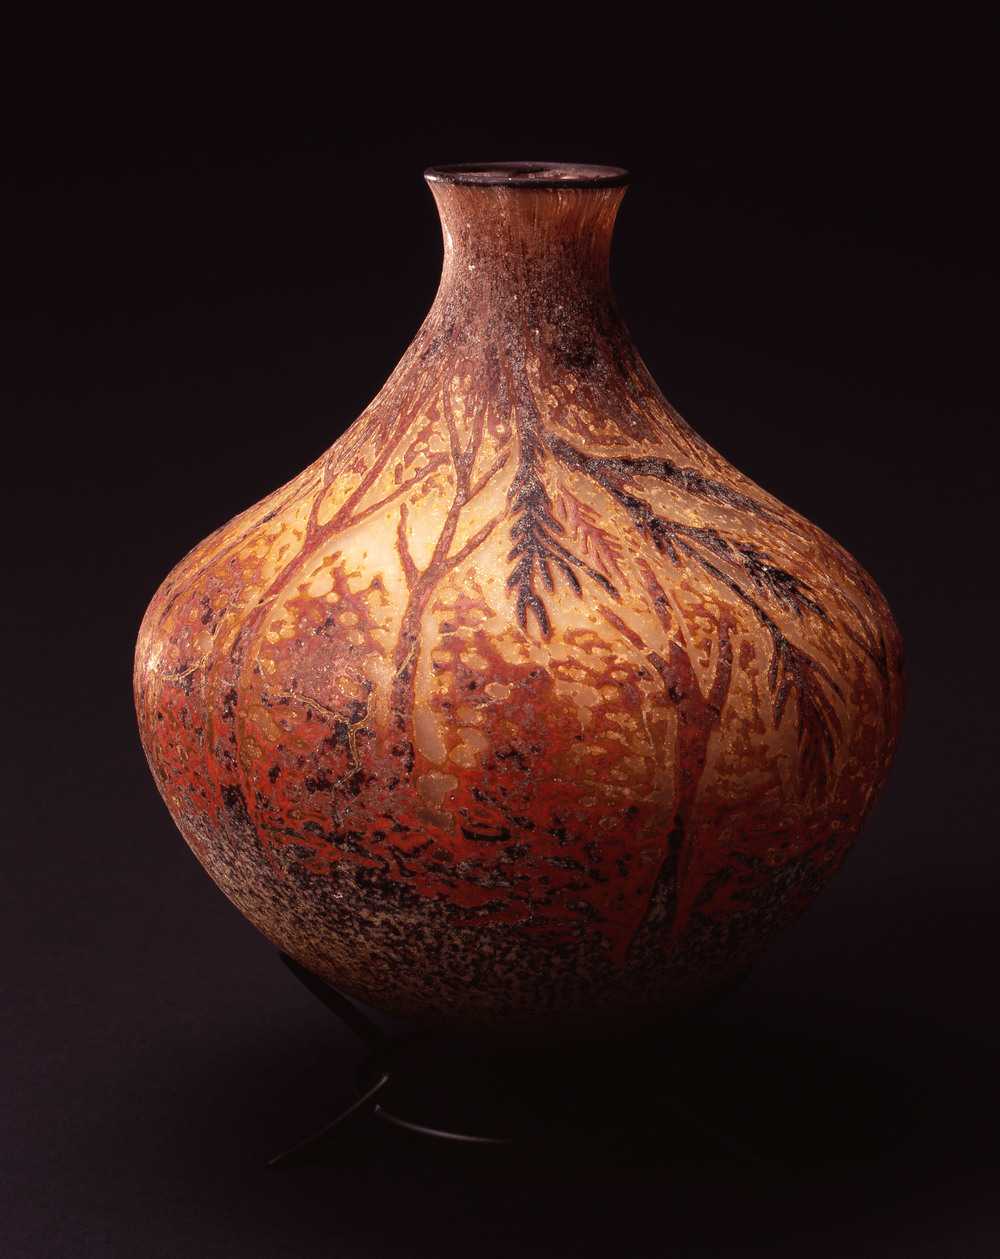 William Morris,  Vessel with Cedar Boughs  (2004, glass, 10 1/2 x 8 x 8 inches), WM.28